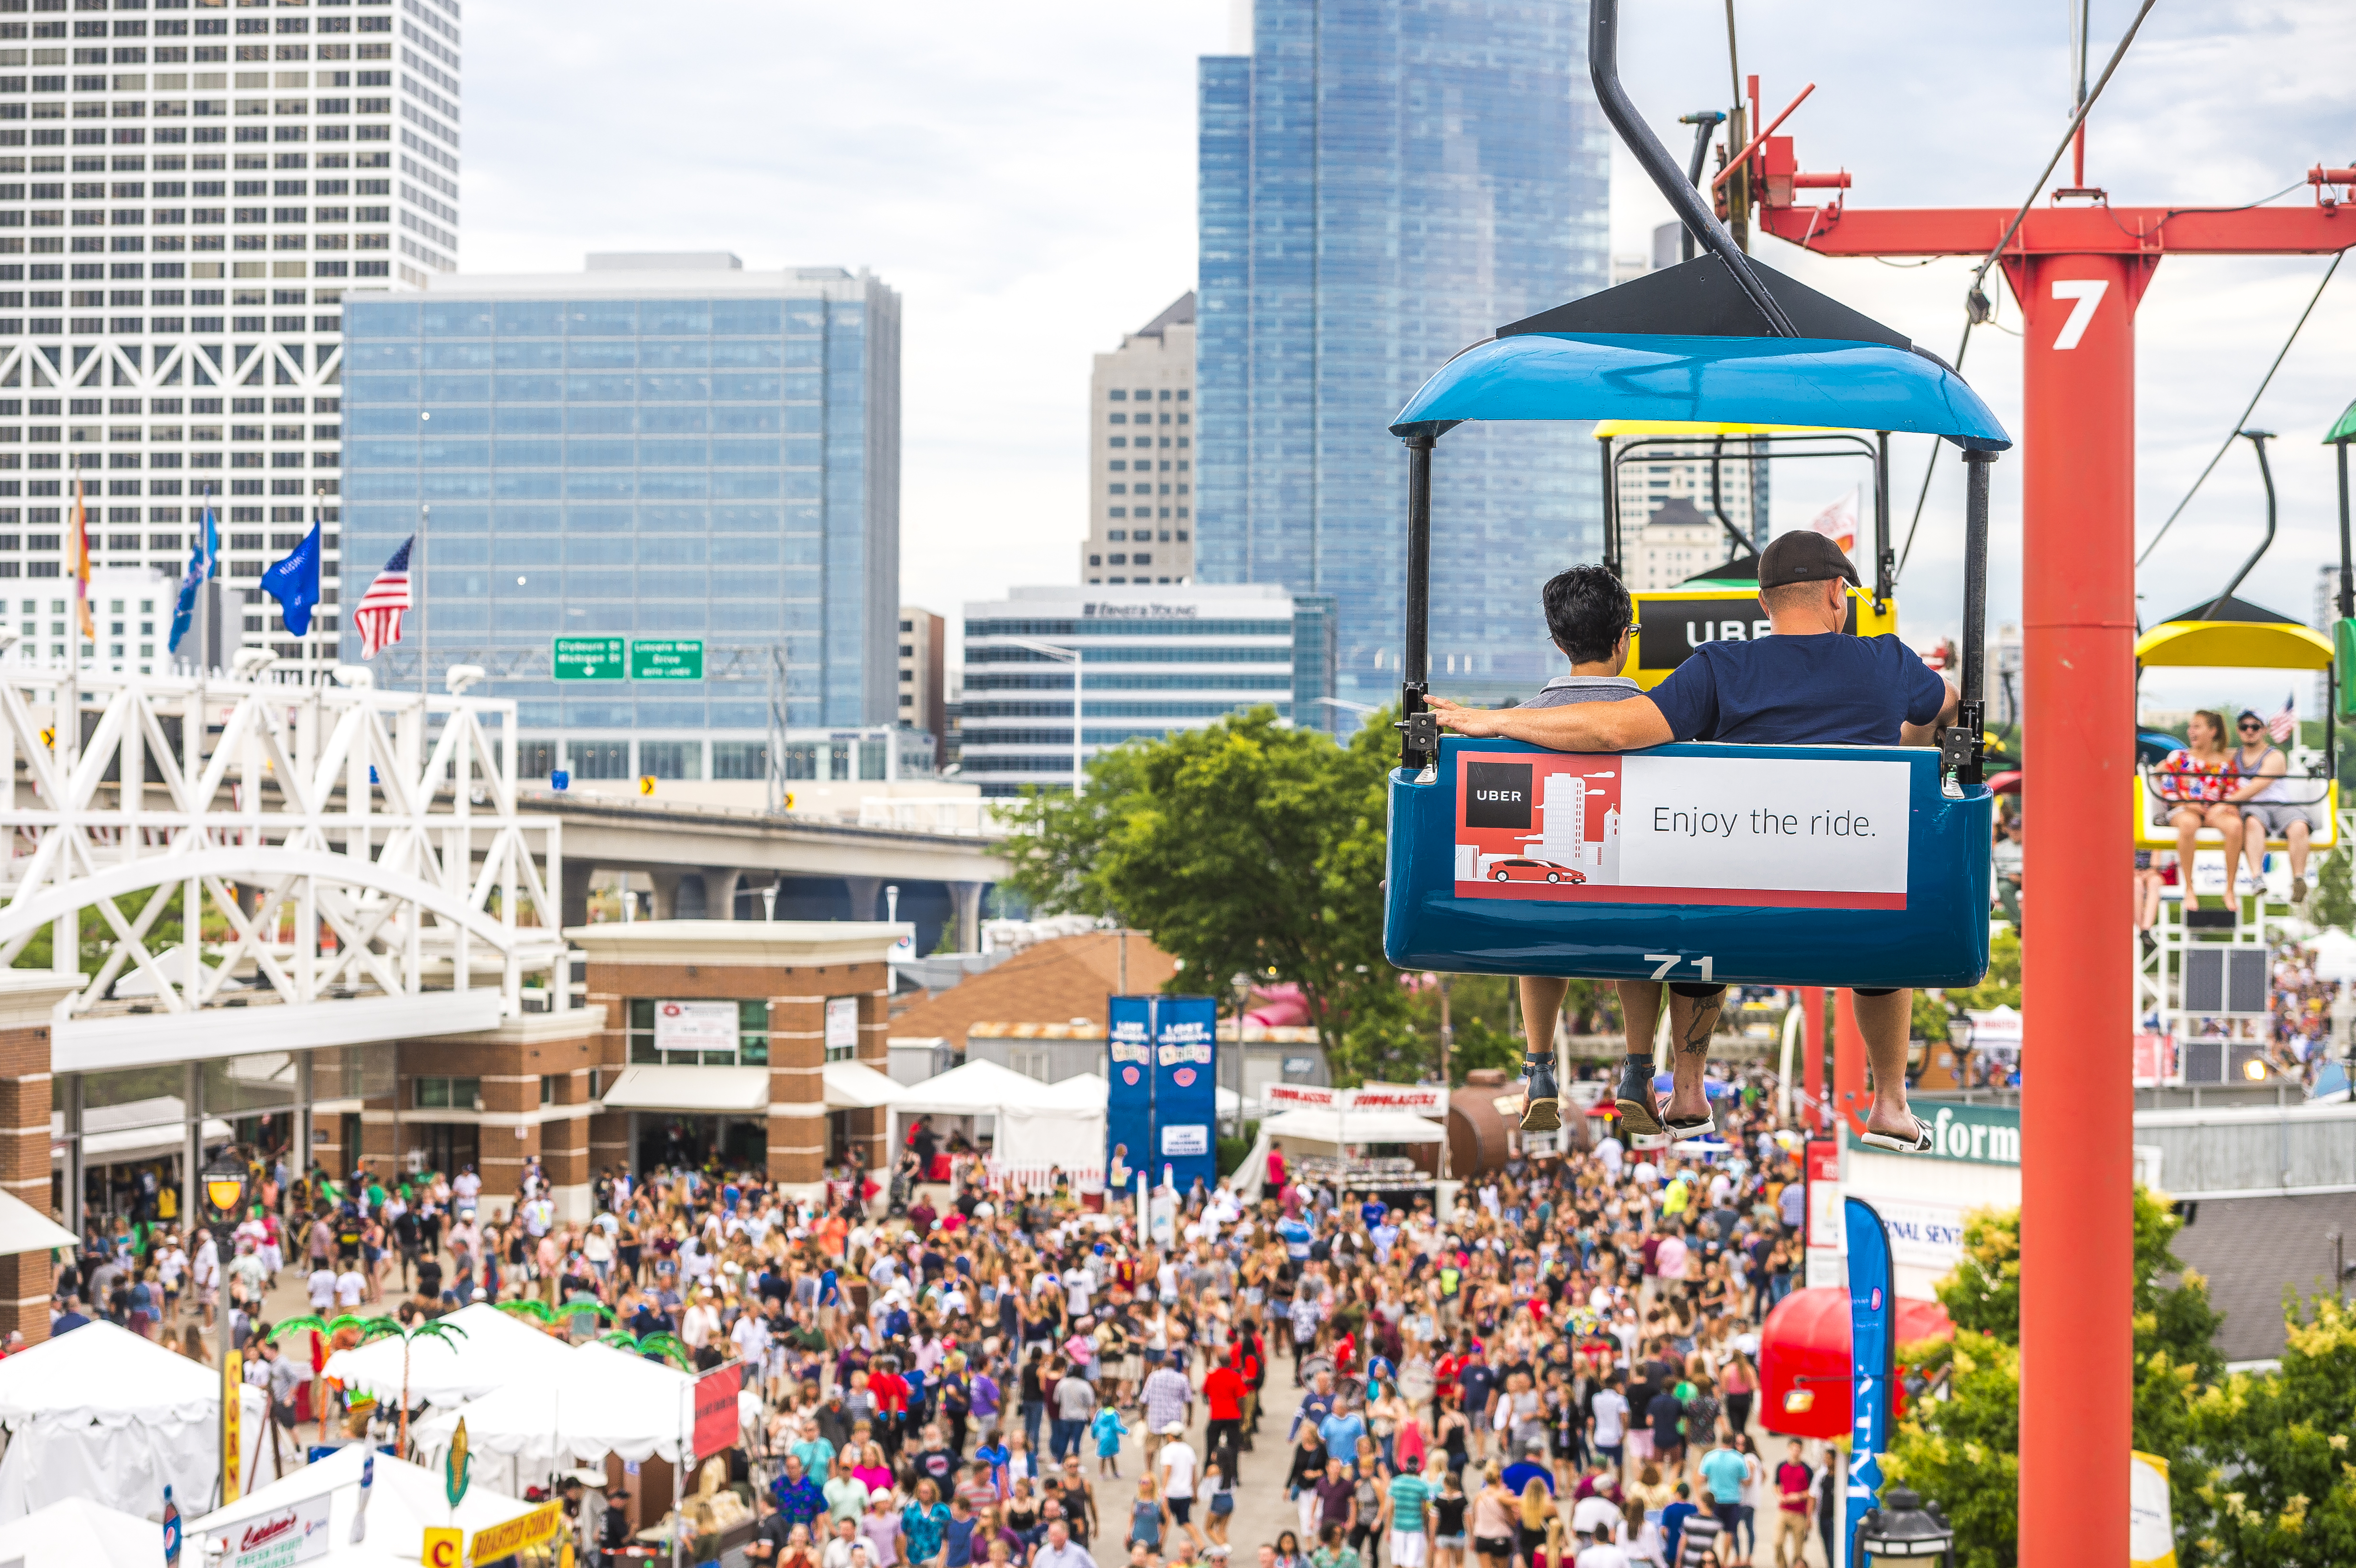 """Looking behind the scenes of""""The World's Largest Music Festival,"""" Summerfest"""